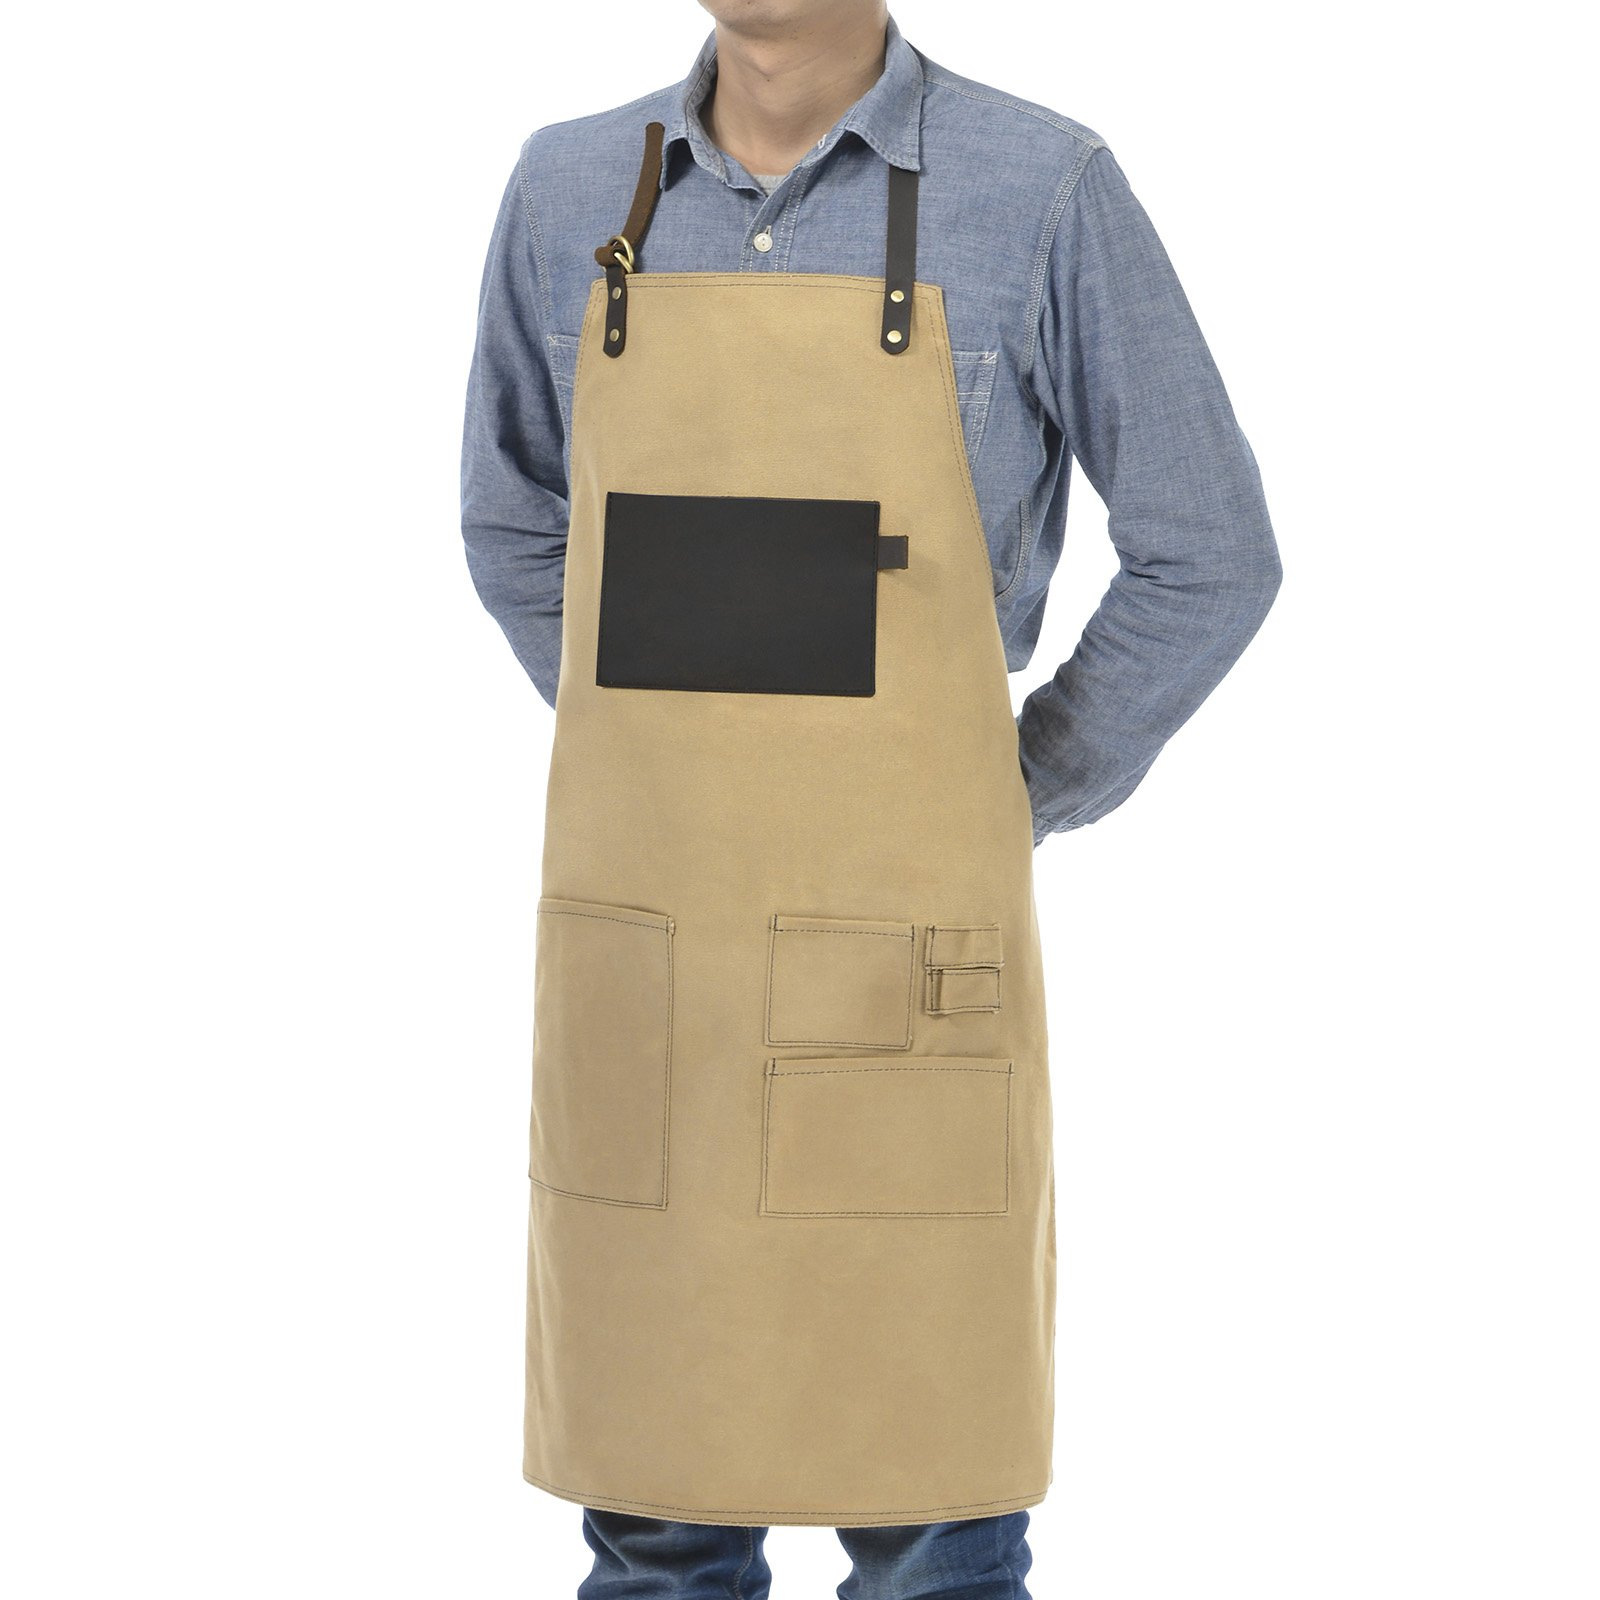 VEEYOO Heavy Duty Waxed Canvas Utility Apron with Pockets, Adjustable Shop Work Tool Welding Apron for Men and Women, Tan, 27x34 inches by VEEYOO (Image #3)